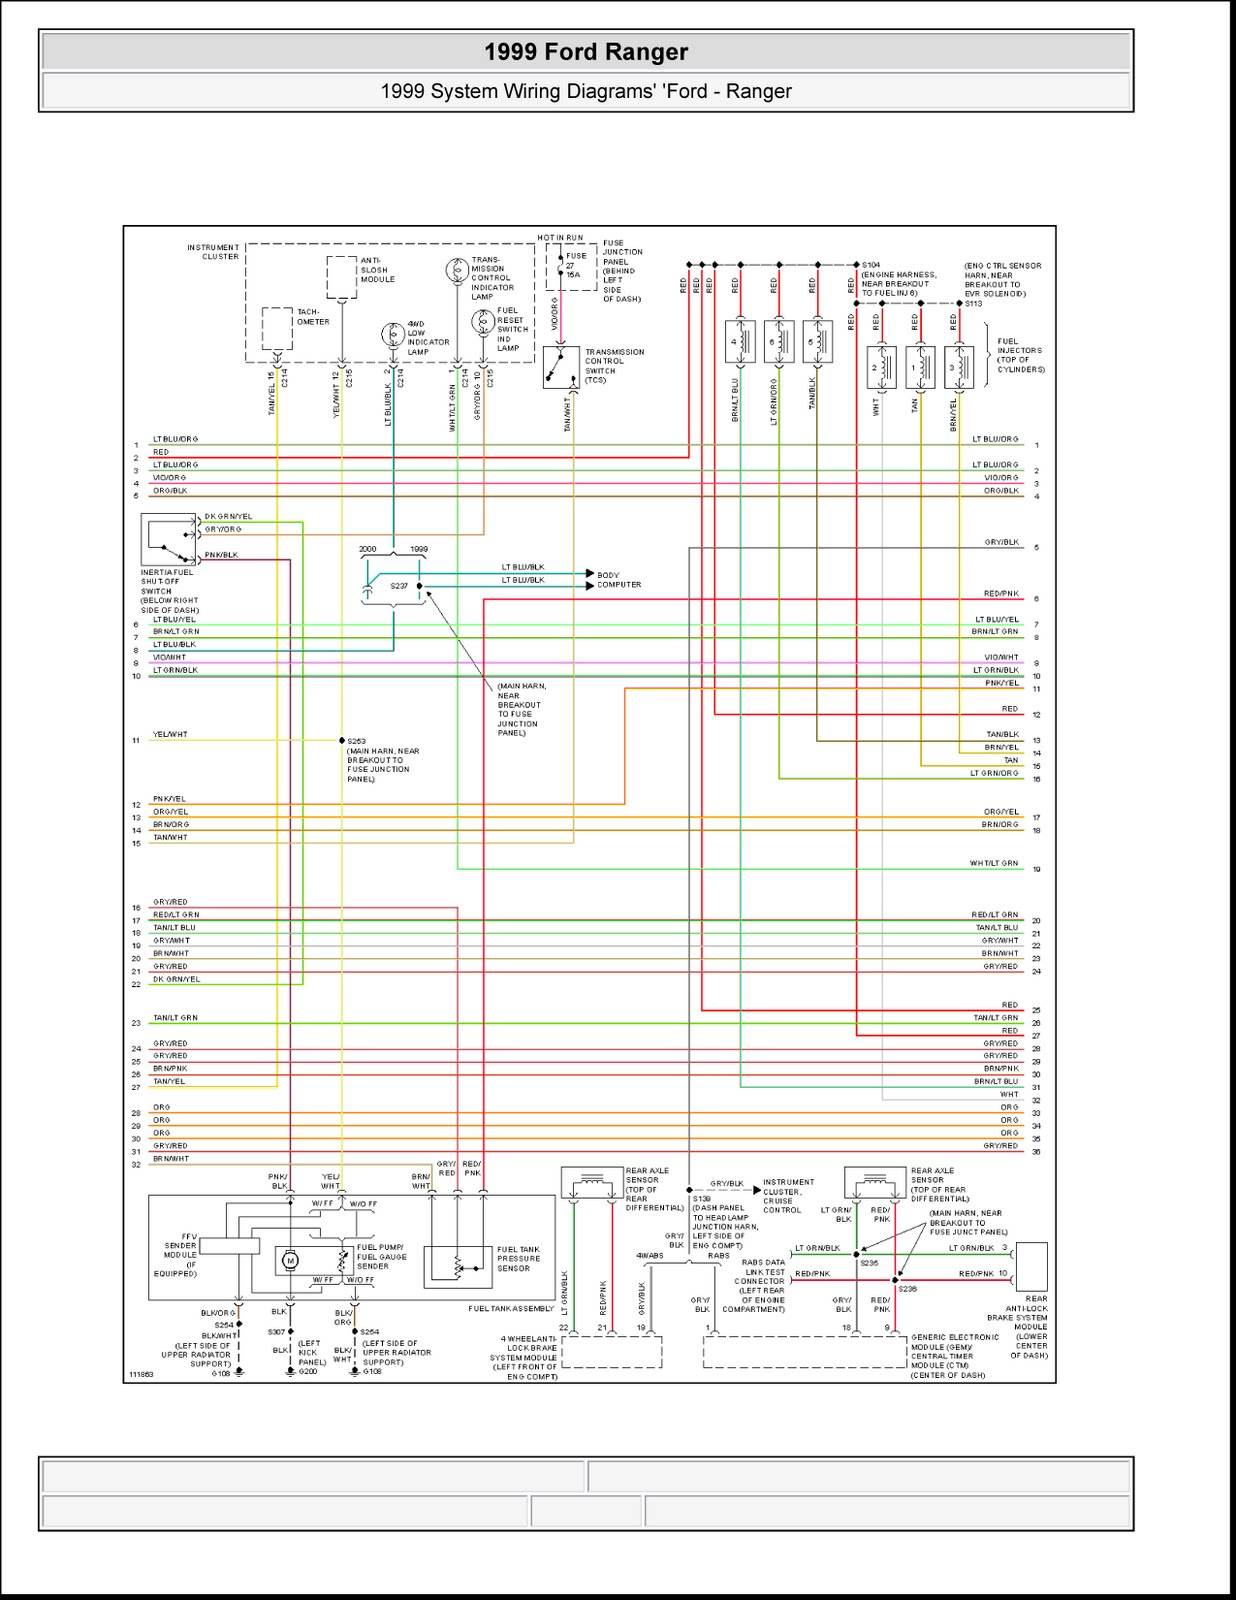 0003 1999 ford ranger system wiring diagrams 4 images wiring 1999 ford ranger ignition wiring diagram at crackthecode.co